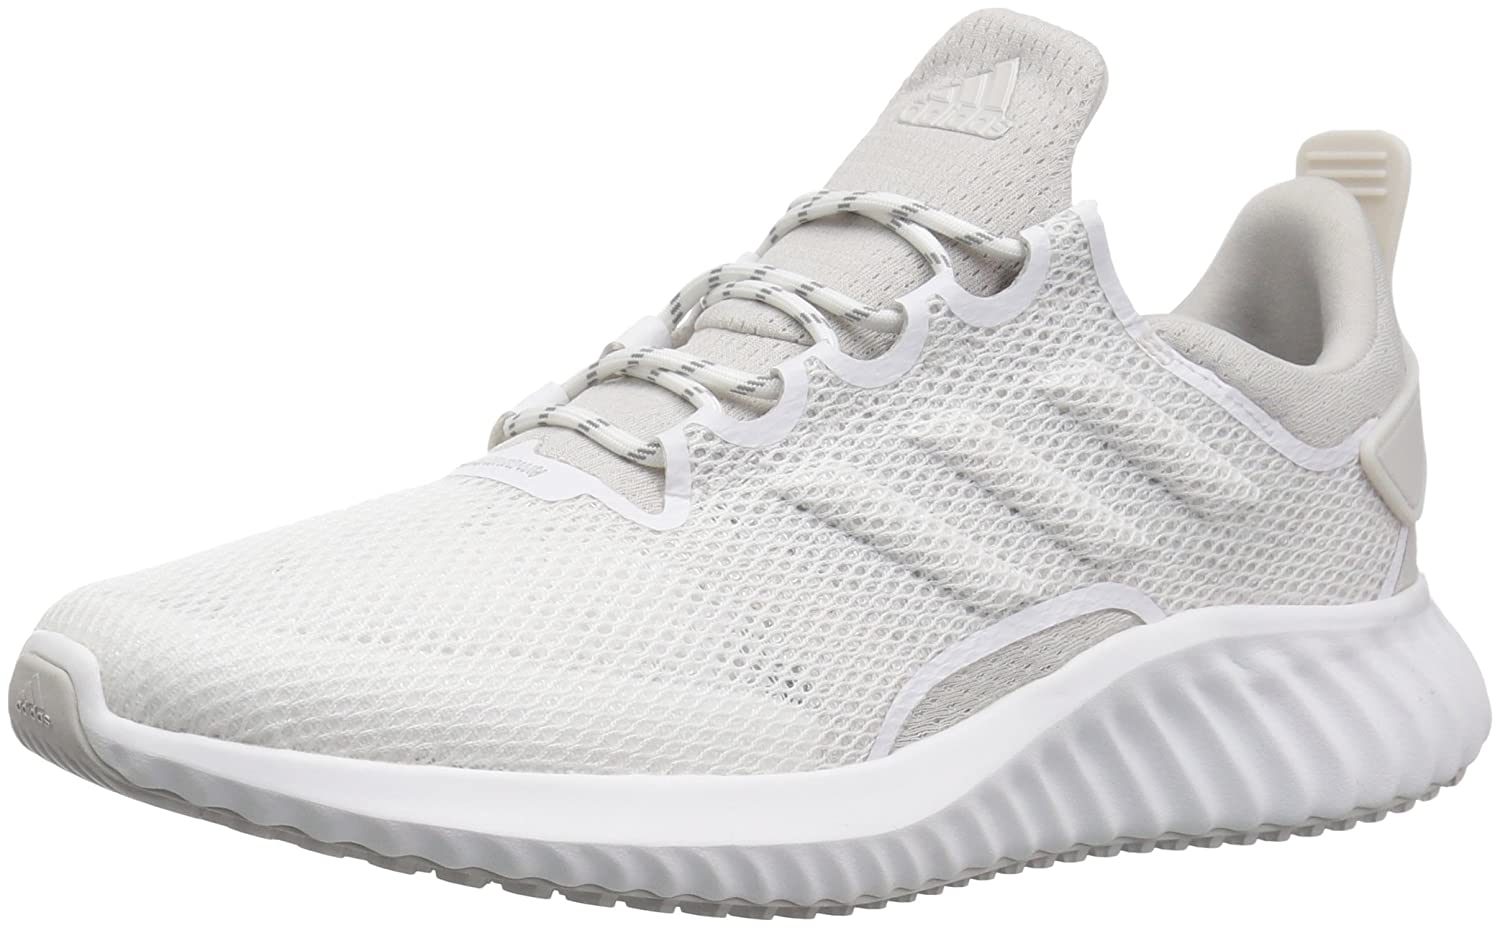 detailed look e9f32 8b5b4 adidas Men s Alphabounce CR CC Running Shoe, White Grey Chalk Pearl, 6.5 M  US  Amazon.co.uk  Shoes   Bags